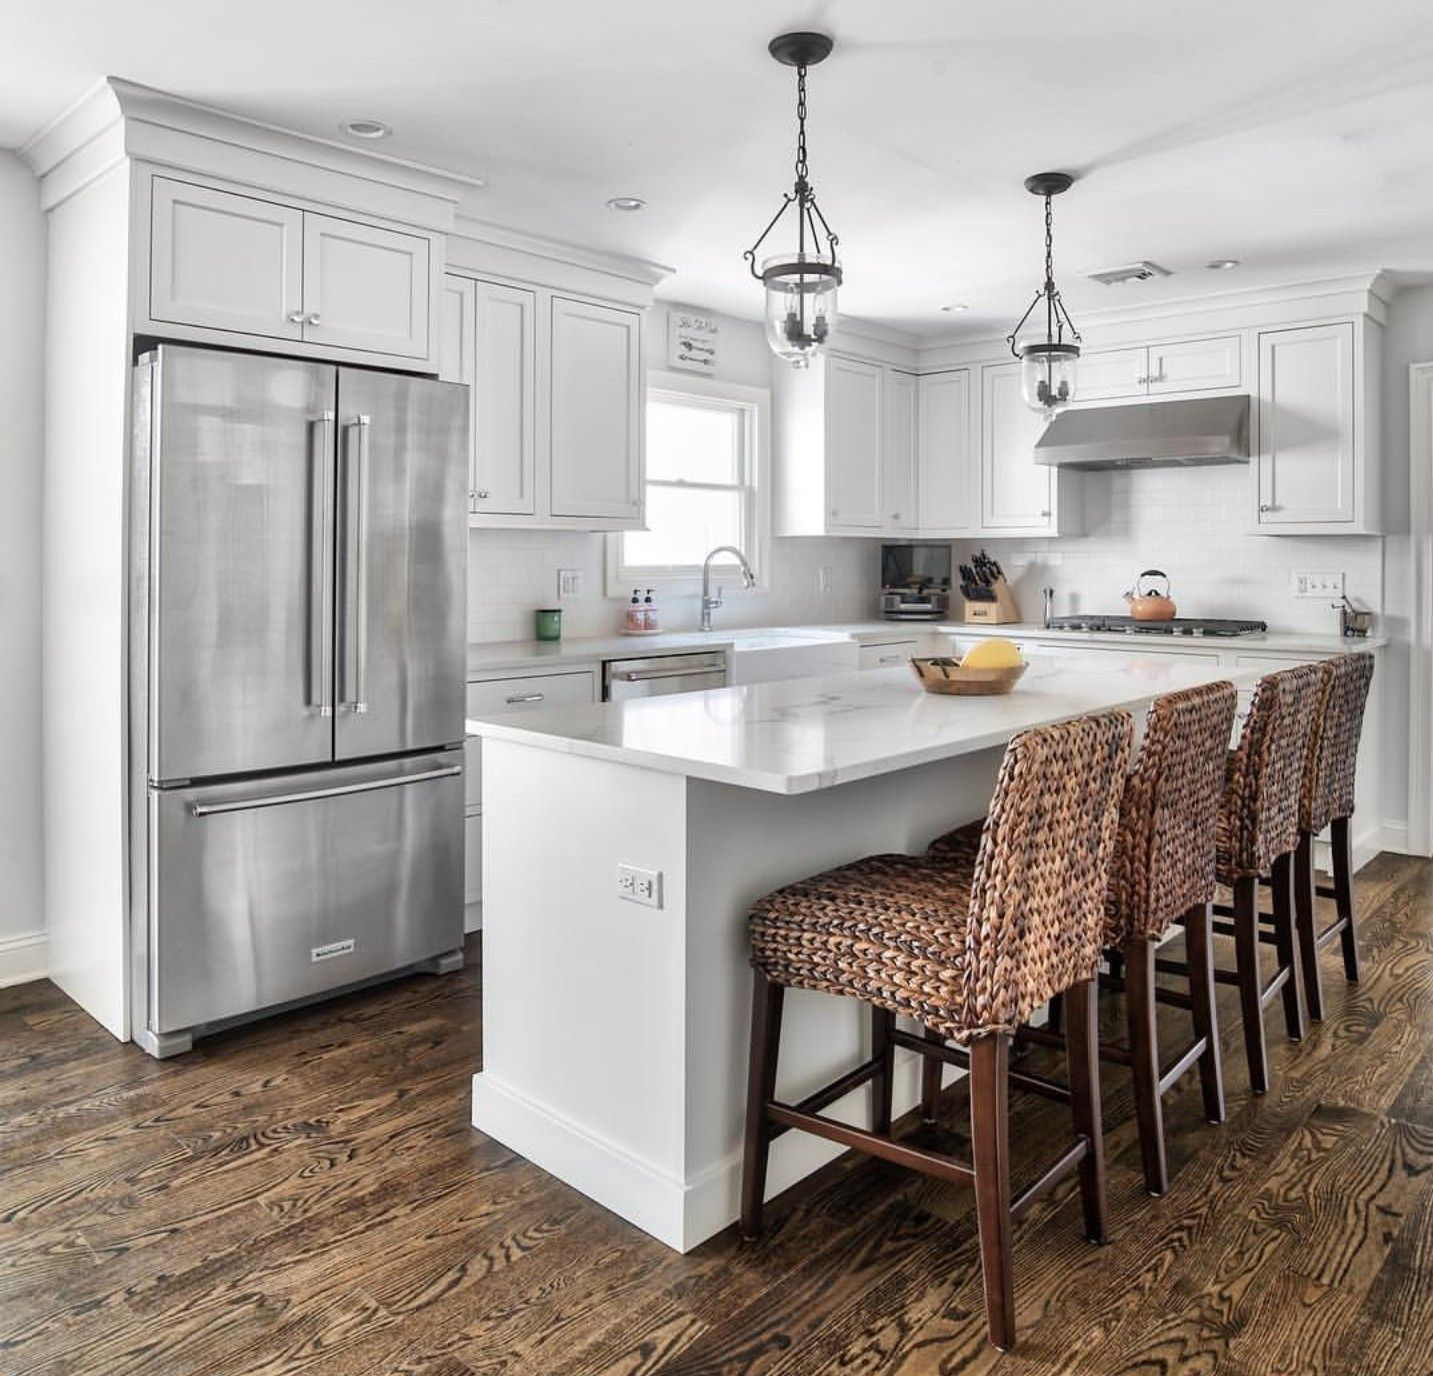 White L shape kitchen with island in 2019 Home decor